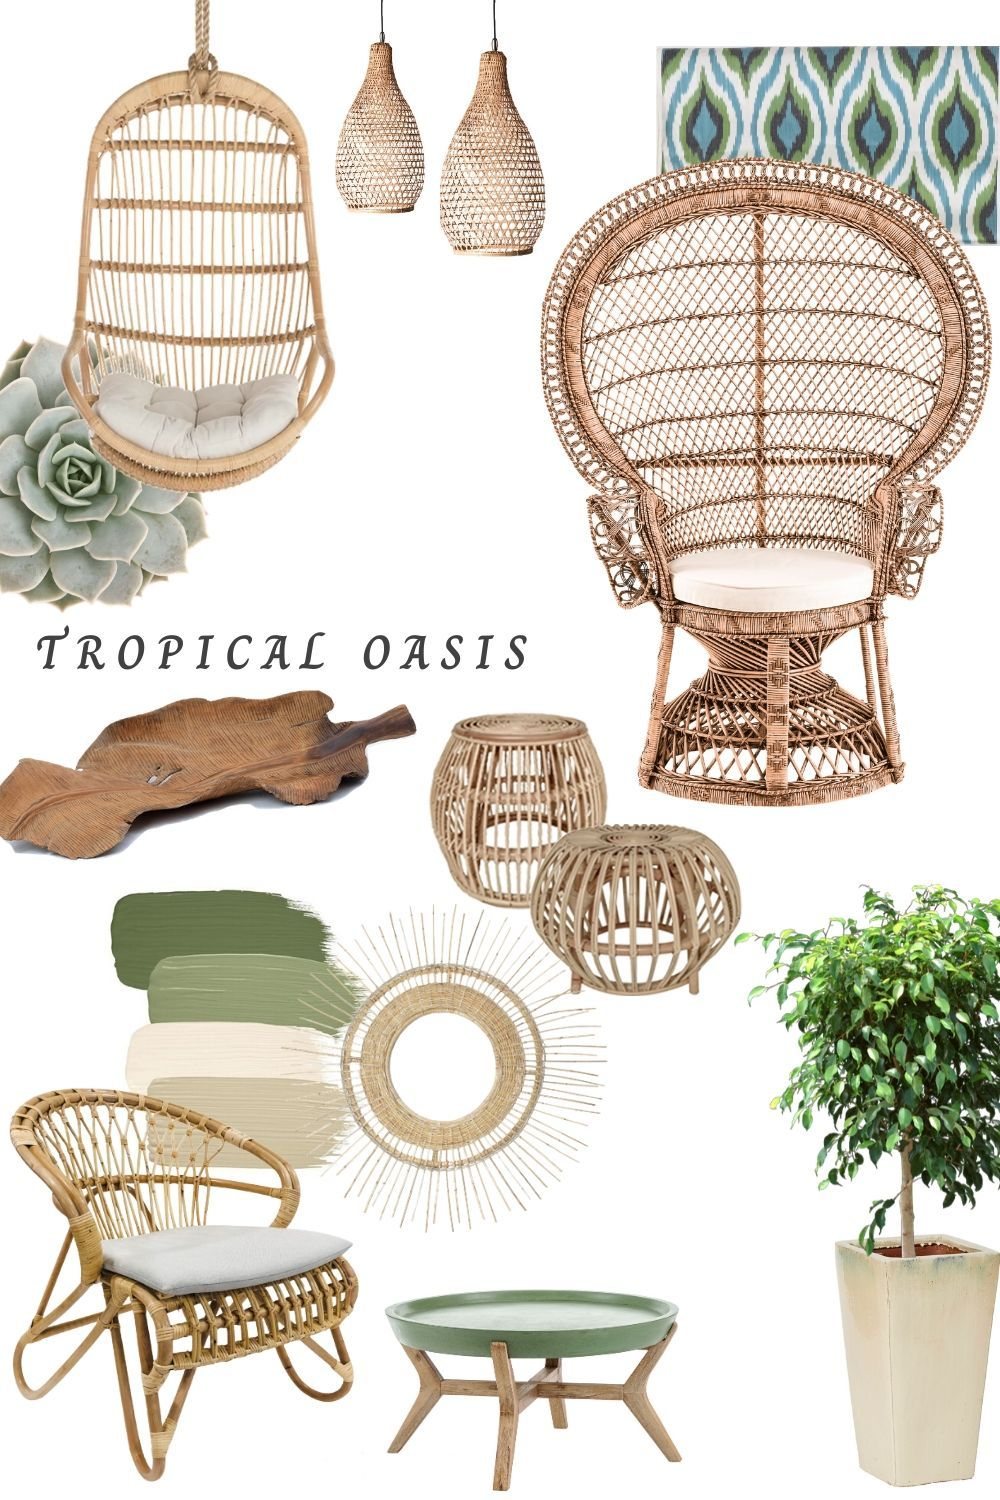 Tropical Oasis Rattan Furniture Decor Tropical Home Decor African Home Decor